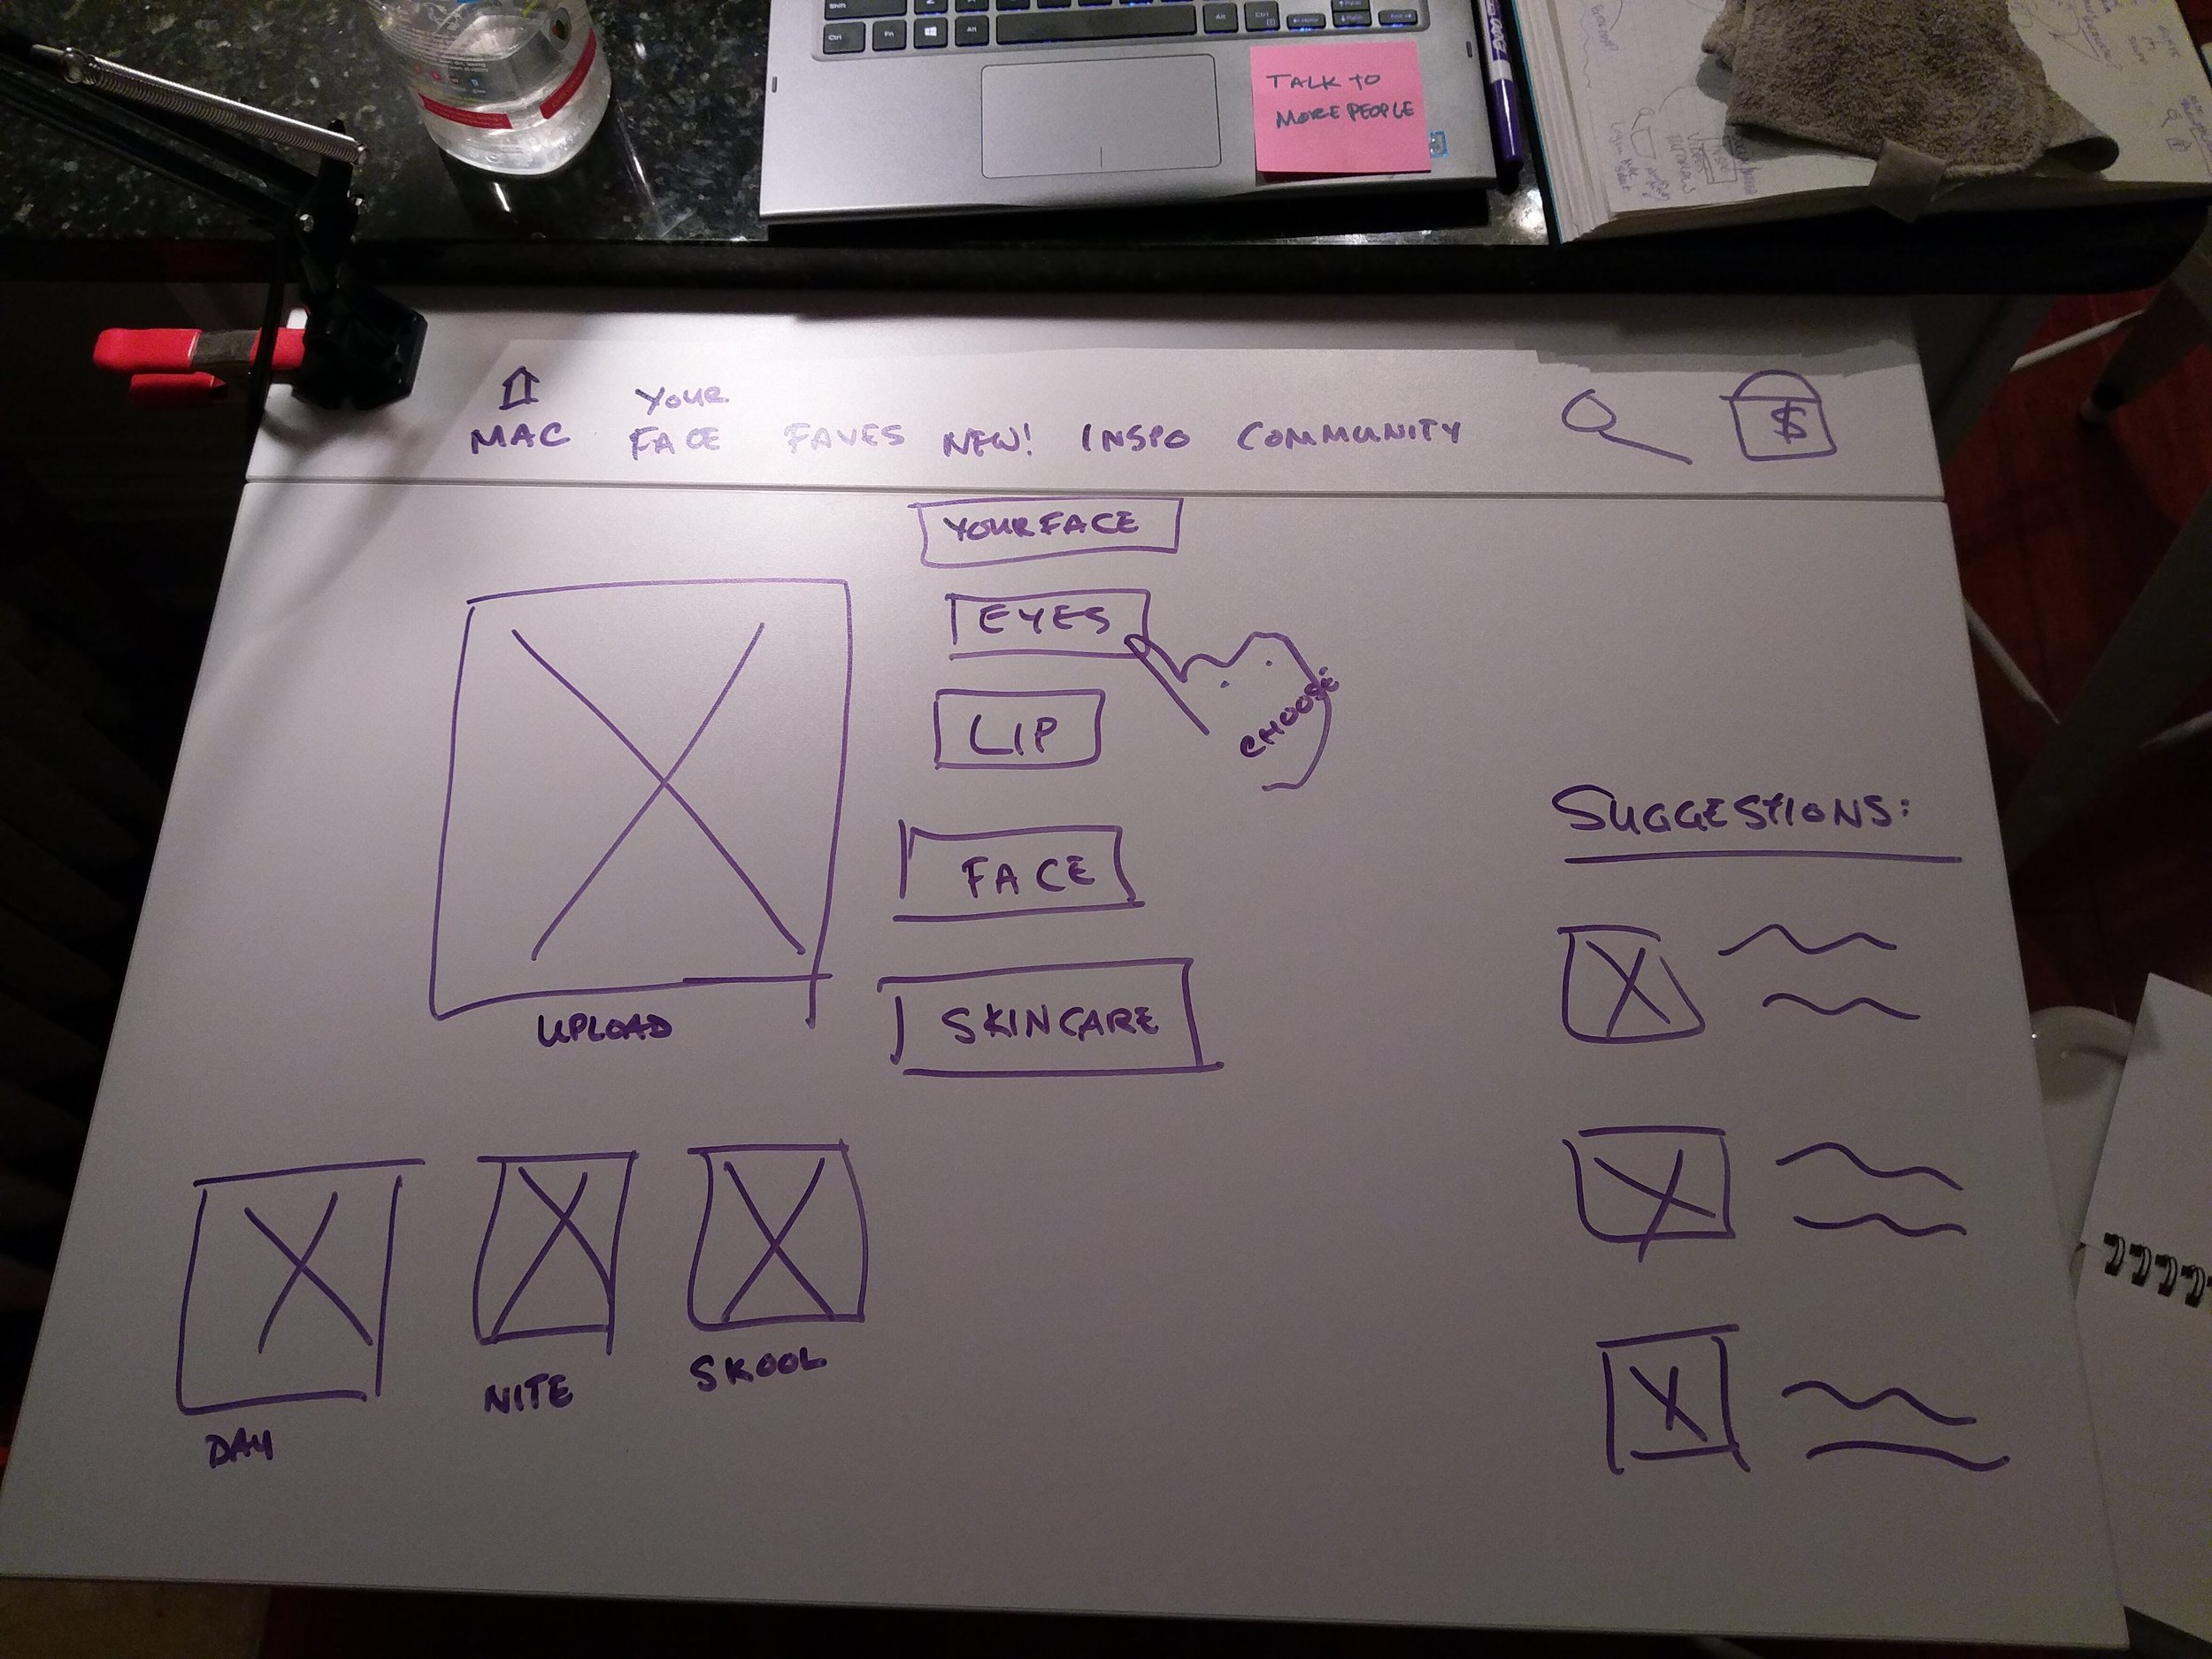 Deeper dive into the wireframe...